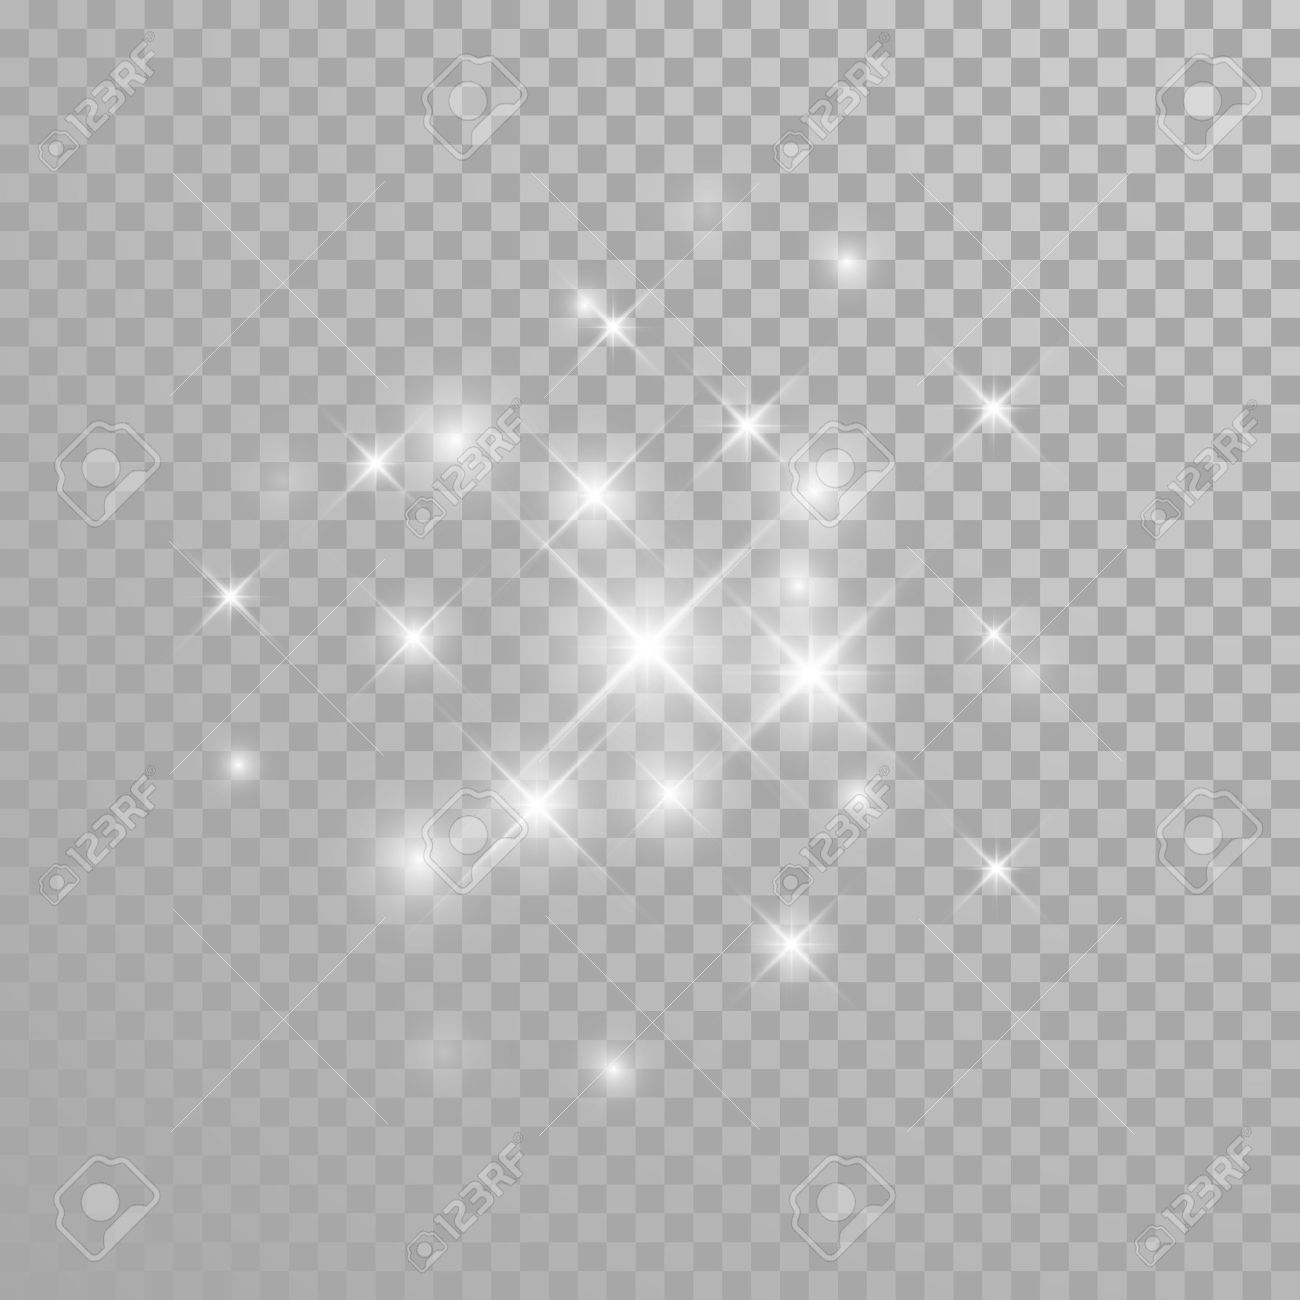 Sparkle Clipart Transparent Background.